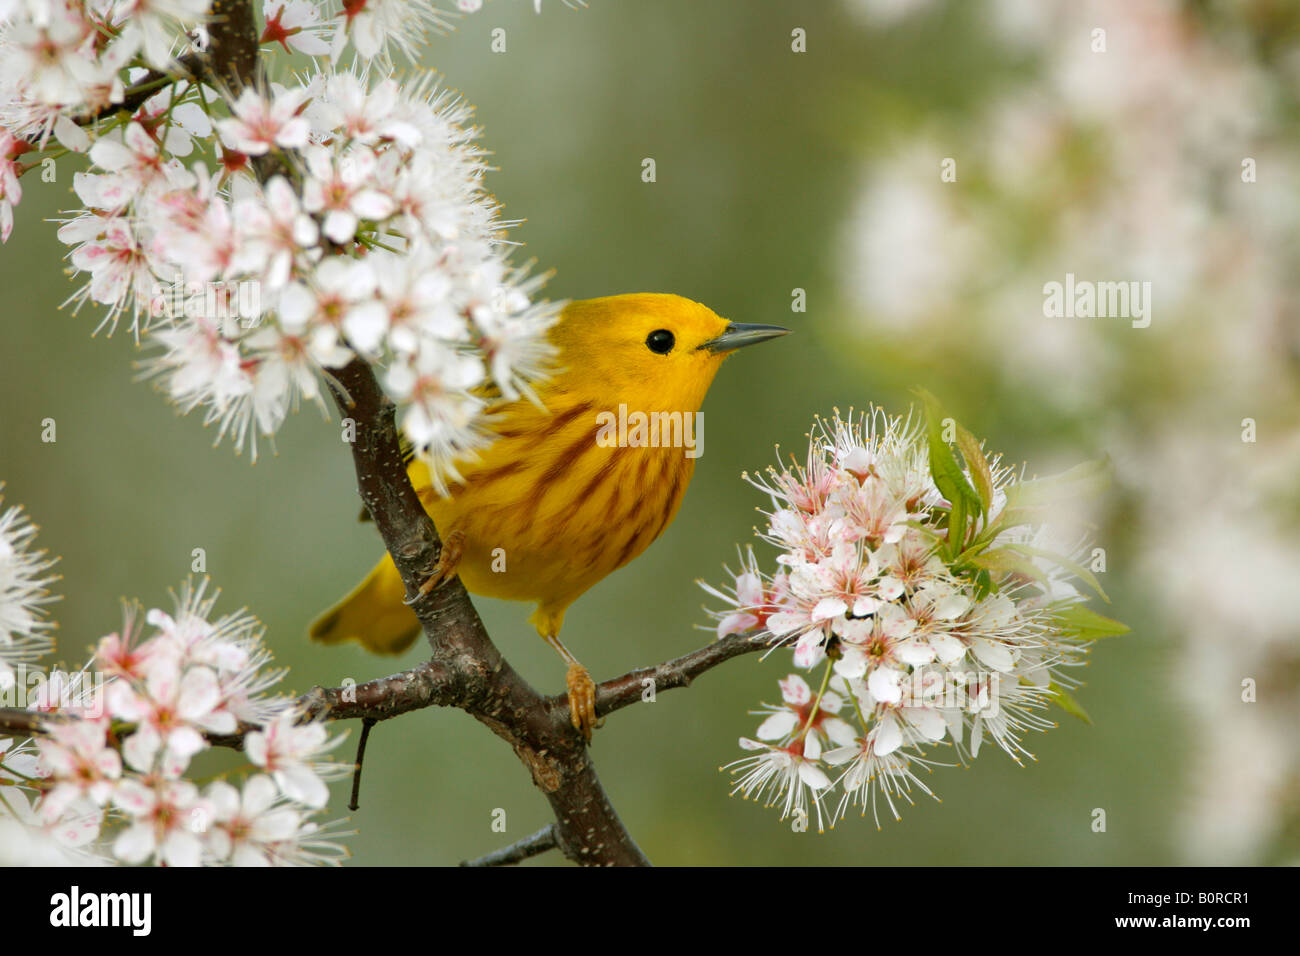 Yellow Warbler Perched in Cherry Blossoms - Stock Image